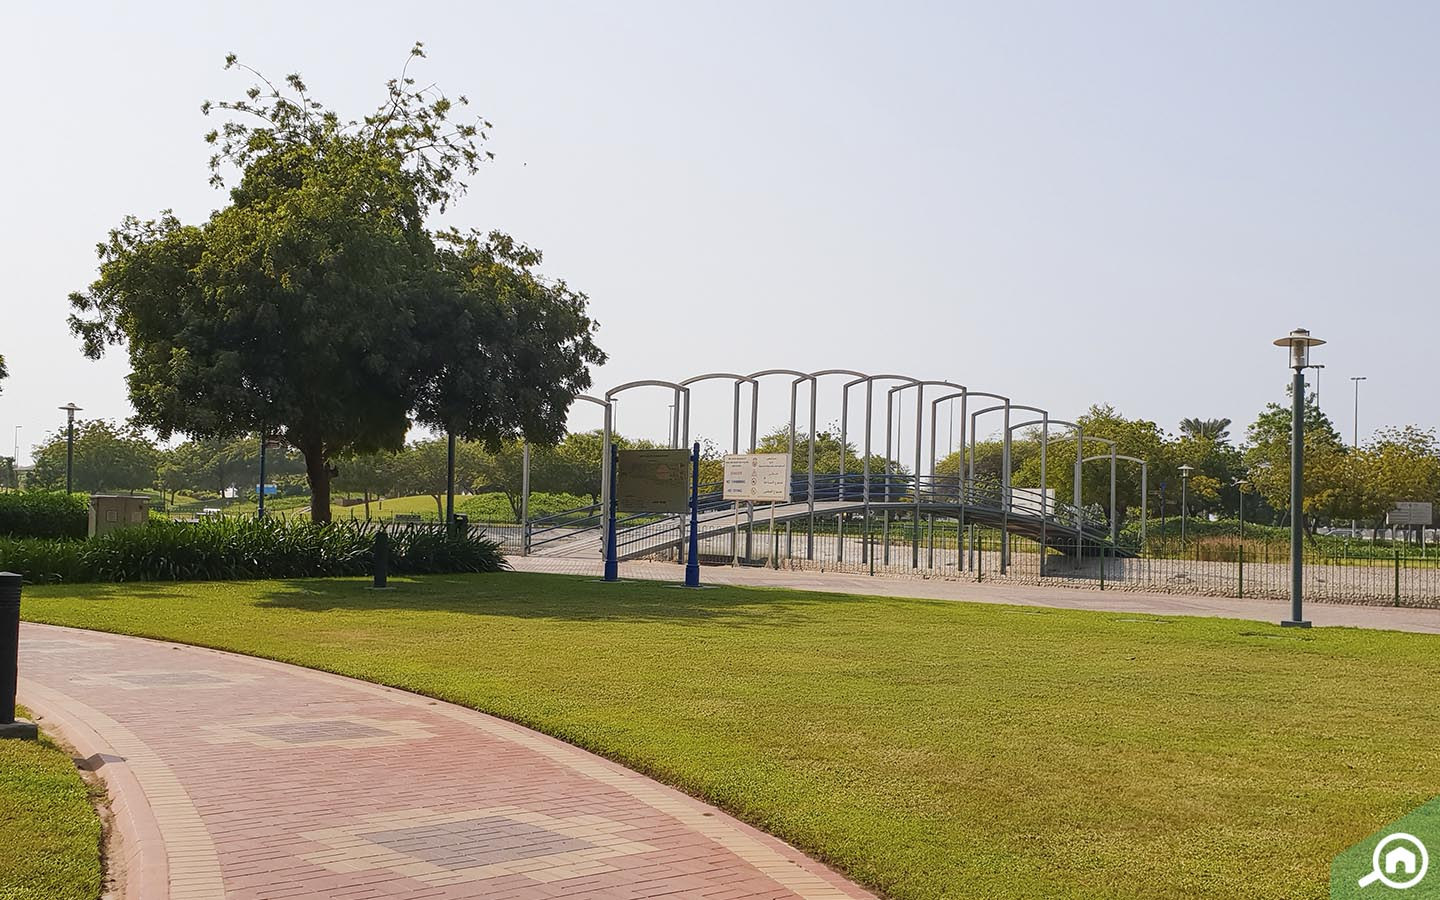 Wooden bridge in Lake Park, one of the parks in Abu Dhabi